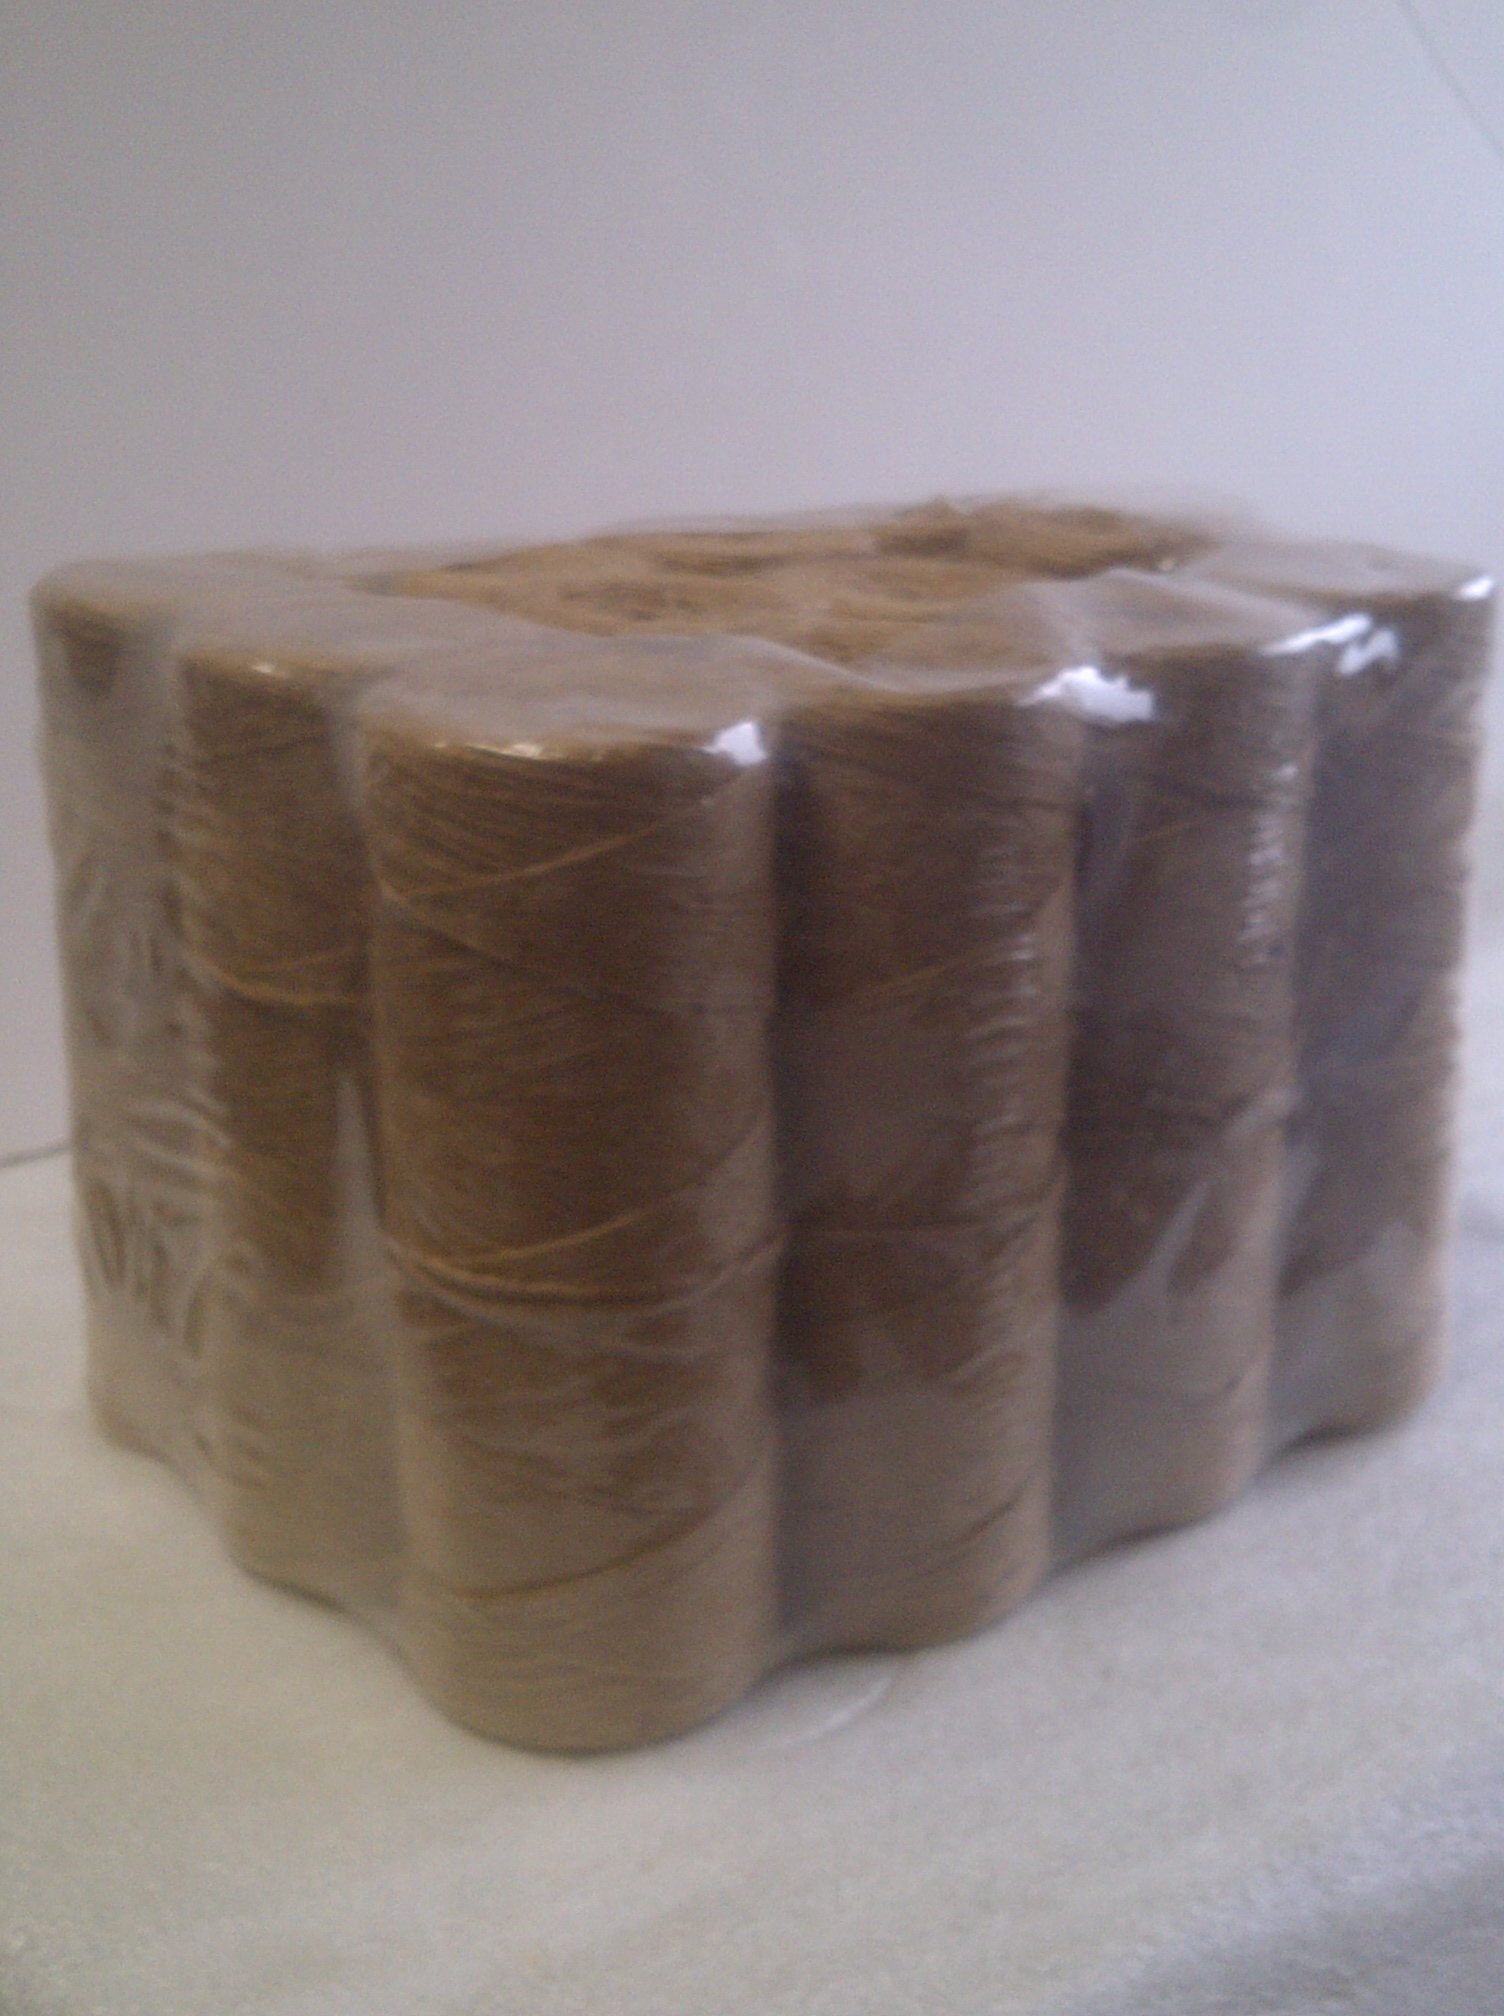 1-Ply Jute Twine 1/2 lb Tube (12 Pack)